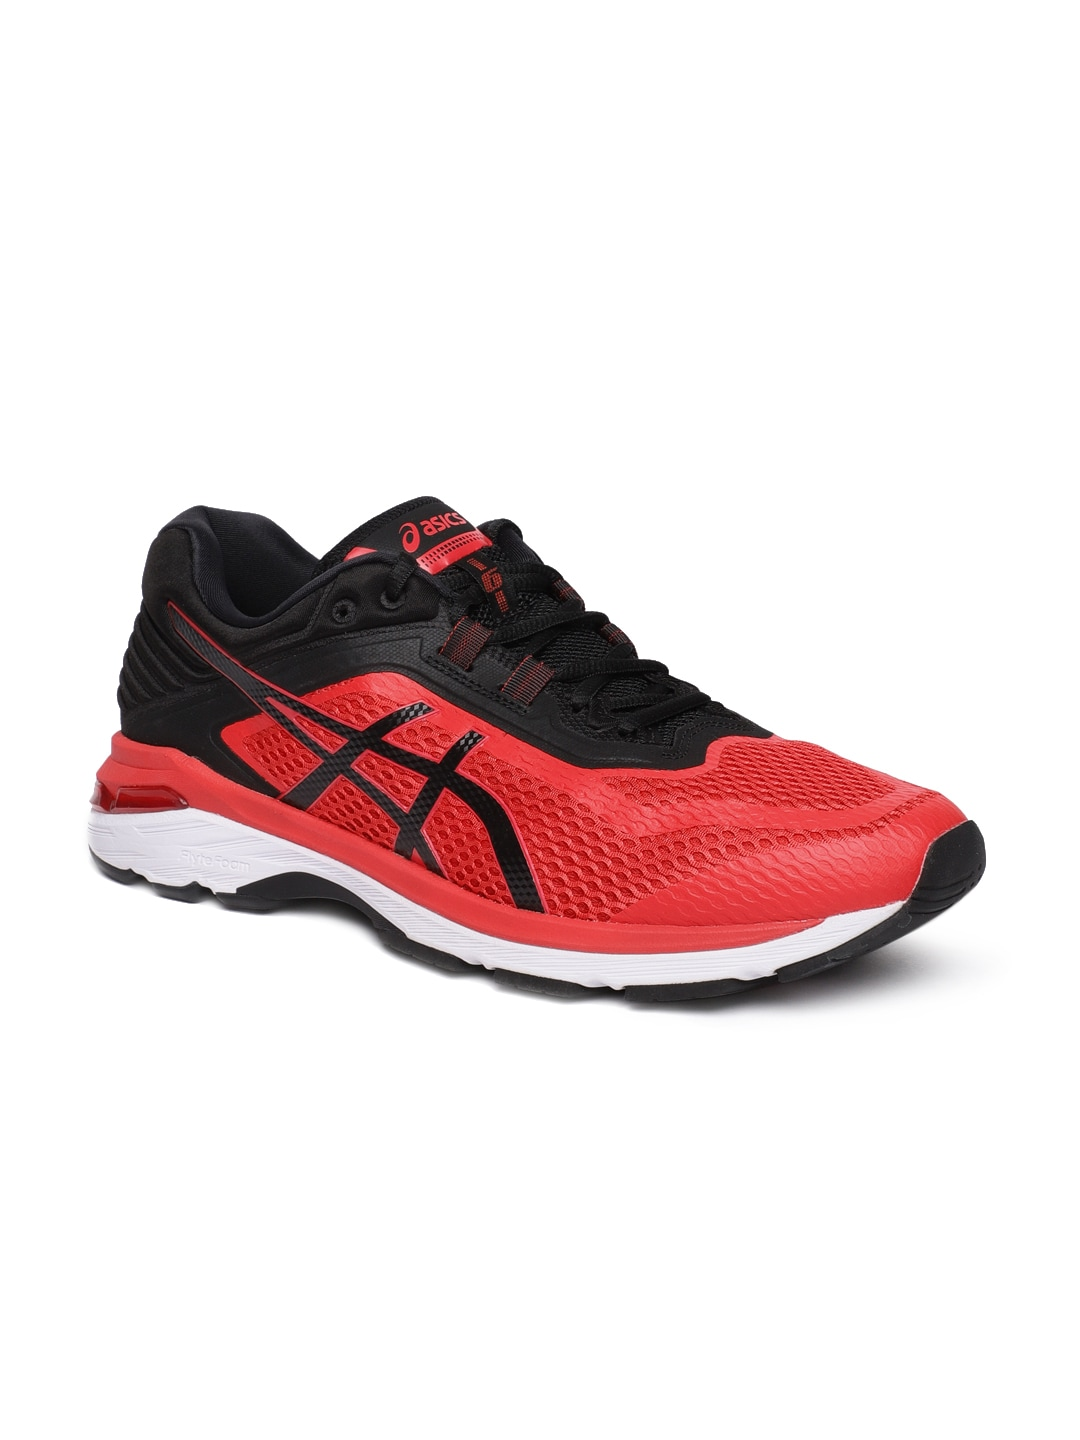 7499bbf4b0 Footwear Asics Running - Buy Footwear Asics Running online in India